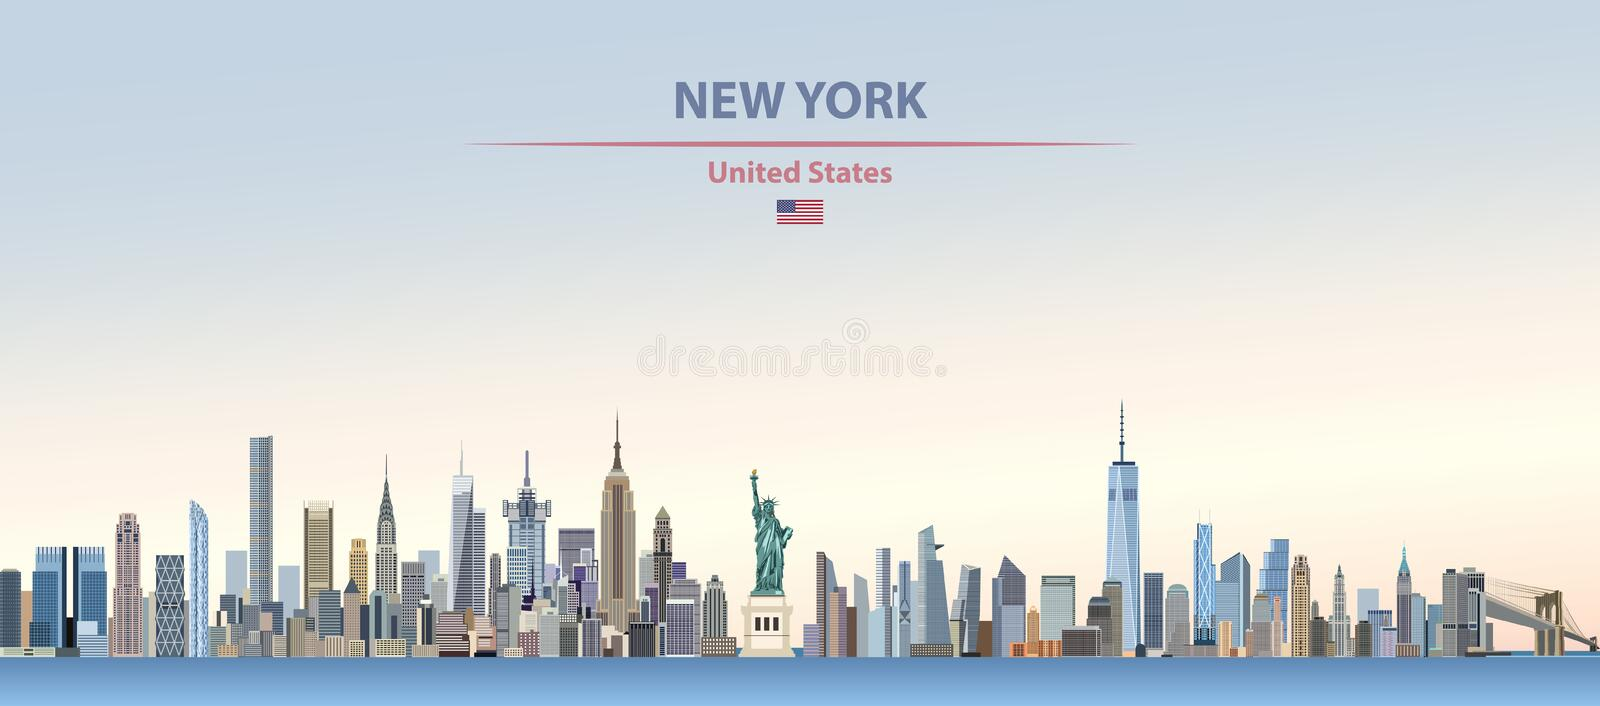 Vector illustration of New York city skyline on colorful gradient beautiful day sky background with flag of United States royalty free illustration